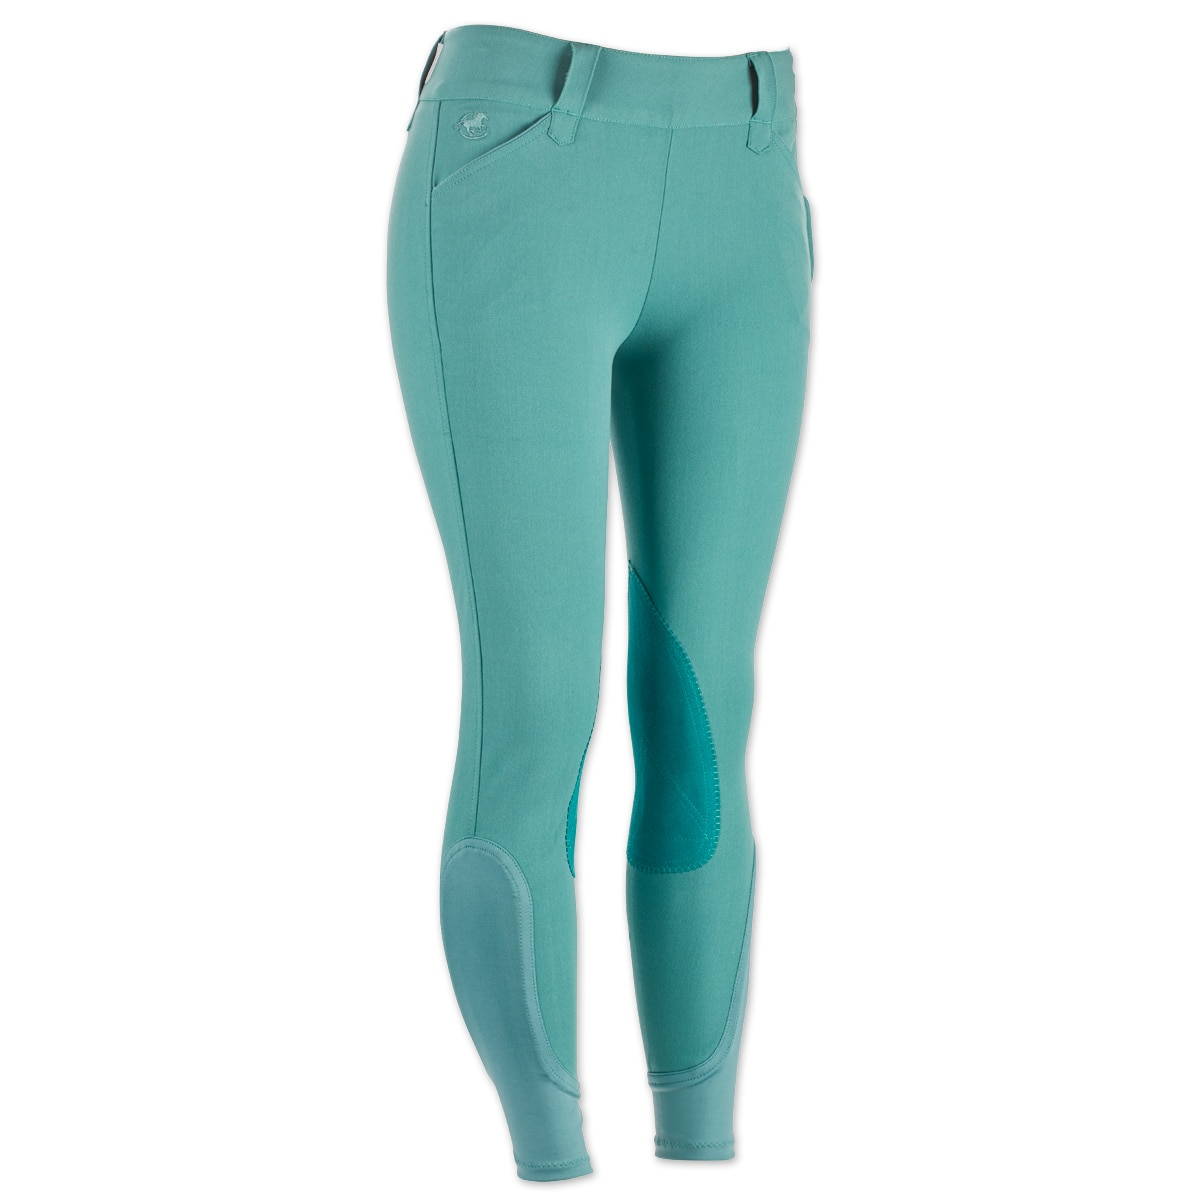 Piper Breeches by SmartPak - Classic Side Zip Knee Patch - Clearance!